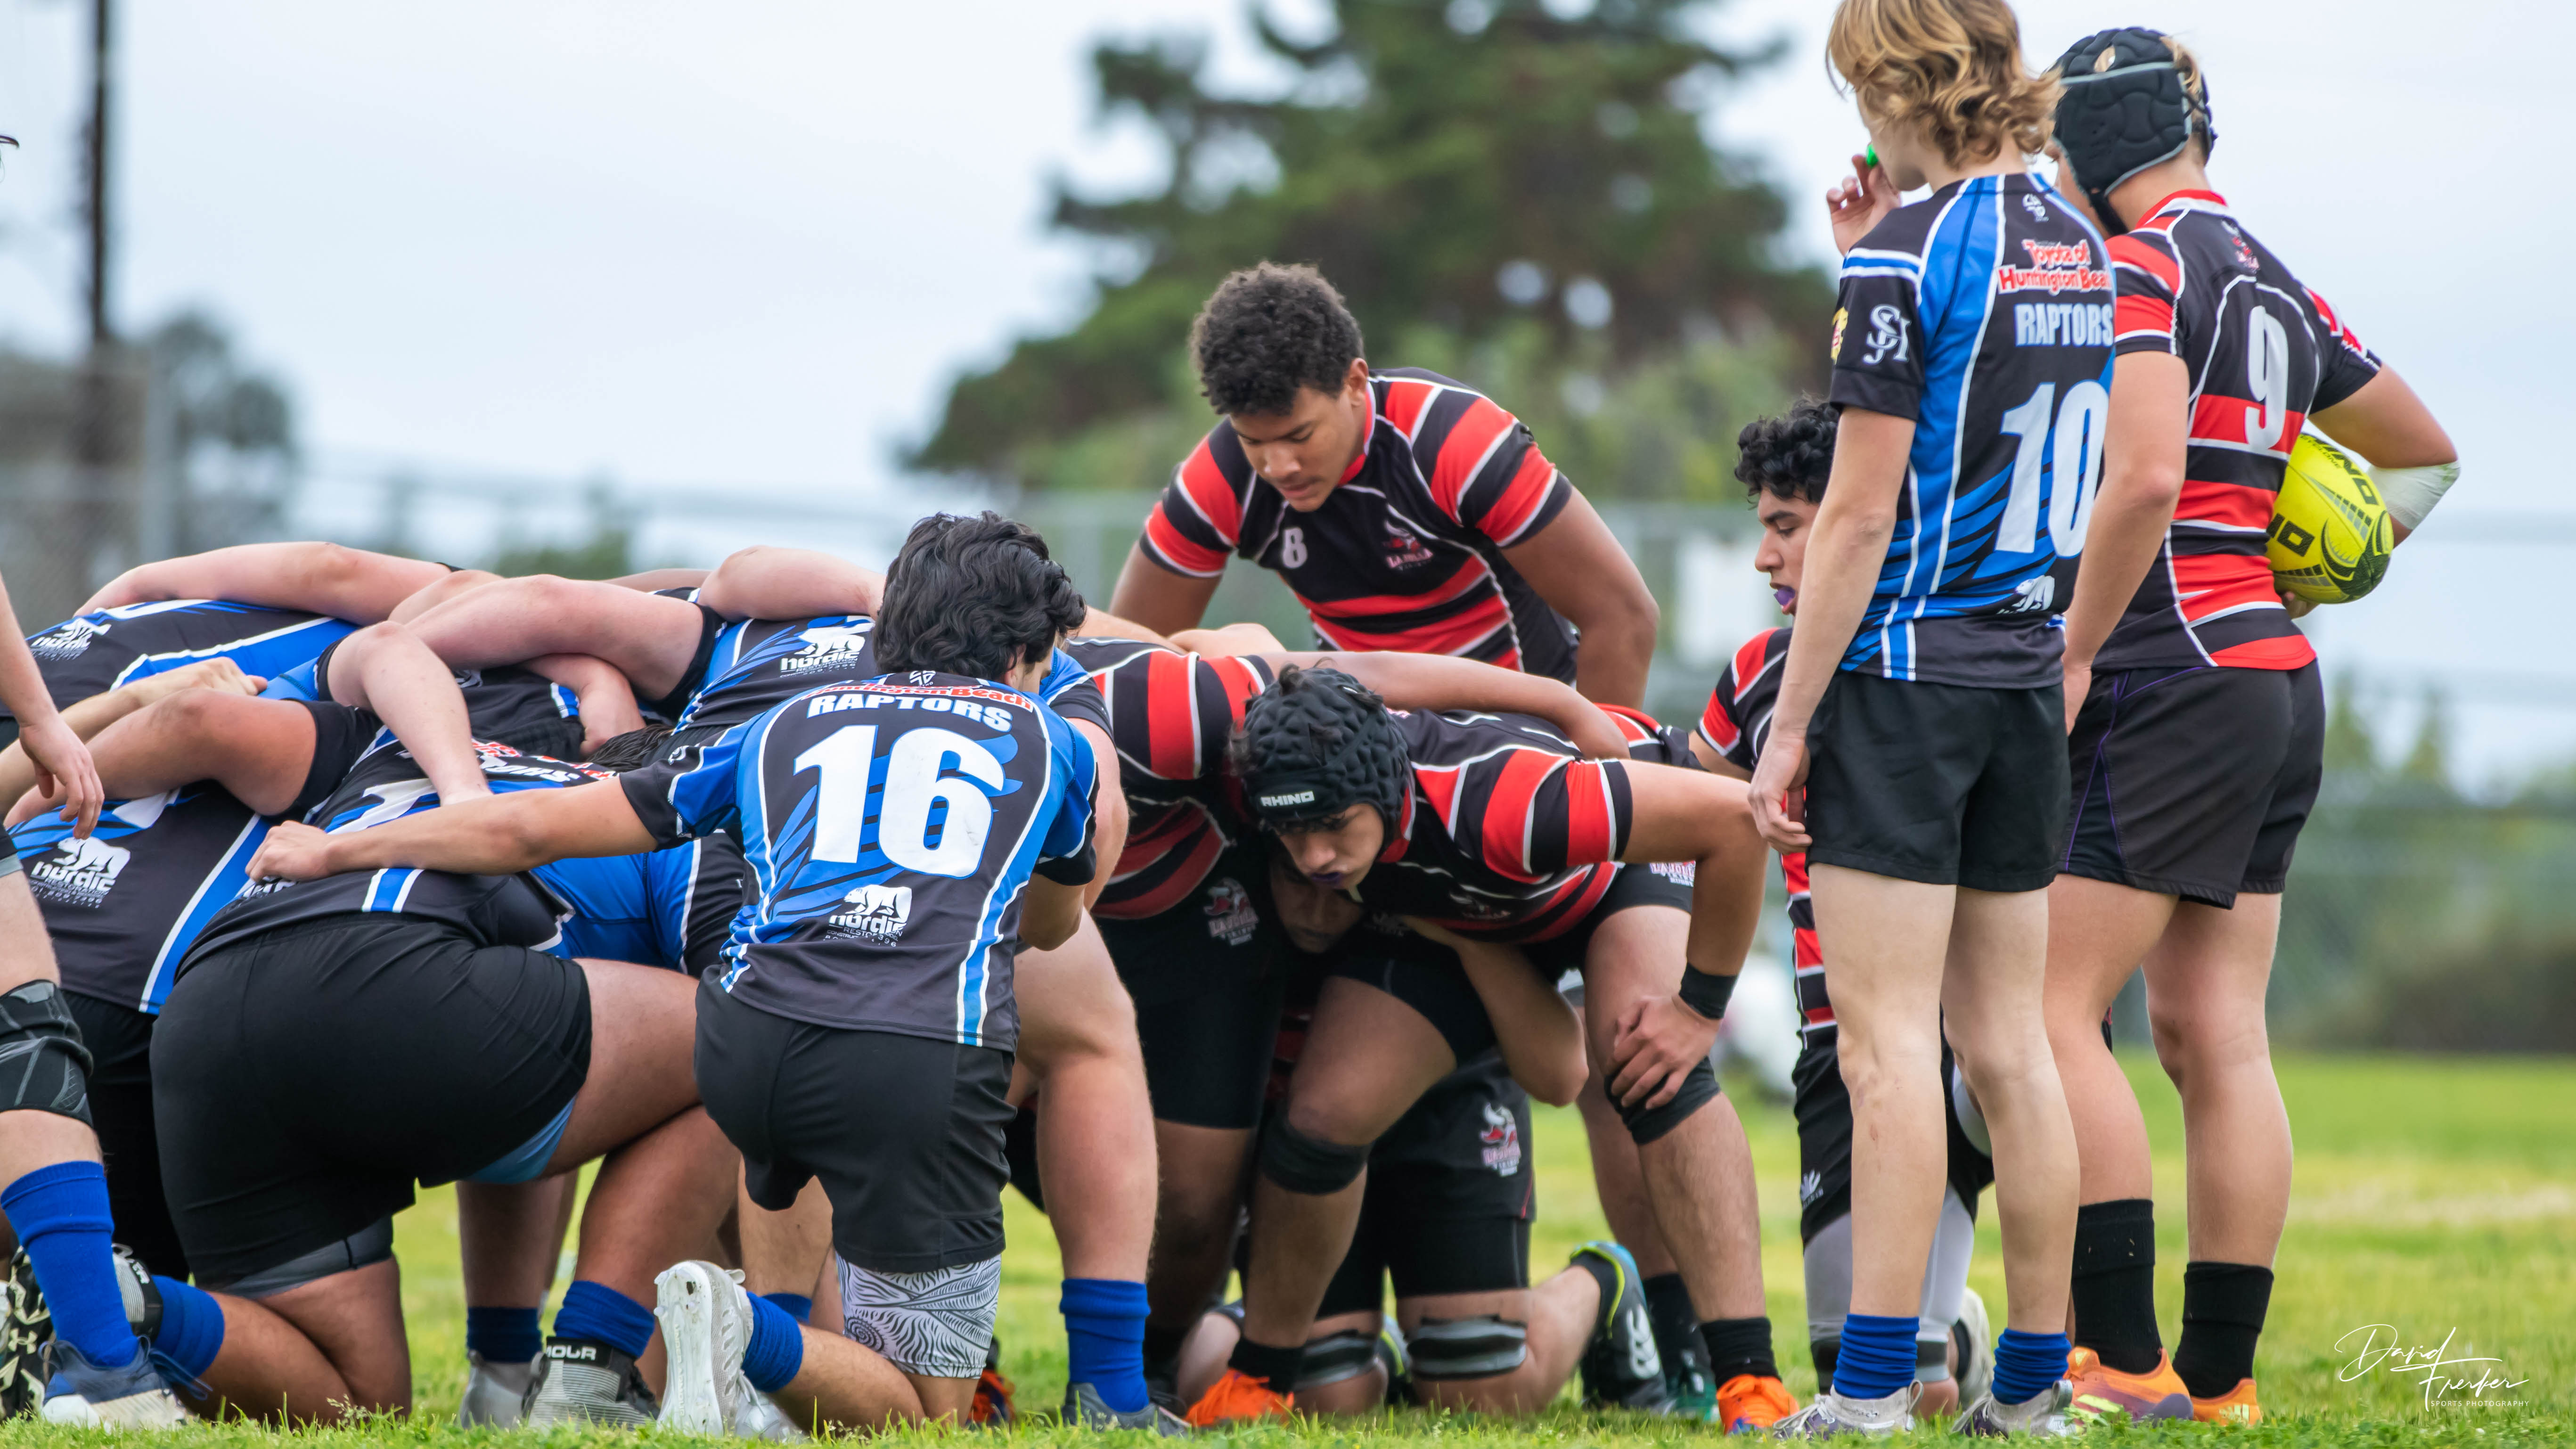 LaJollaRugby48